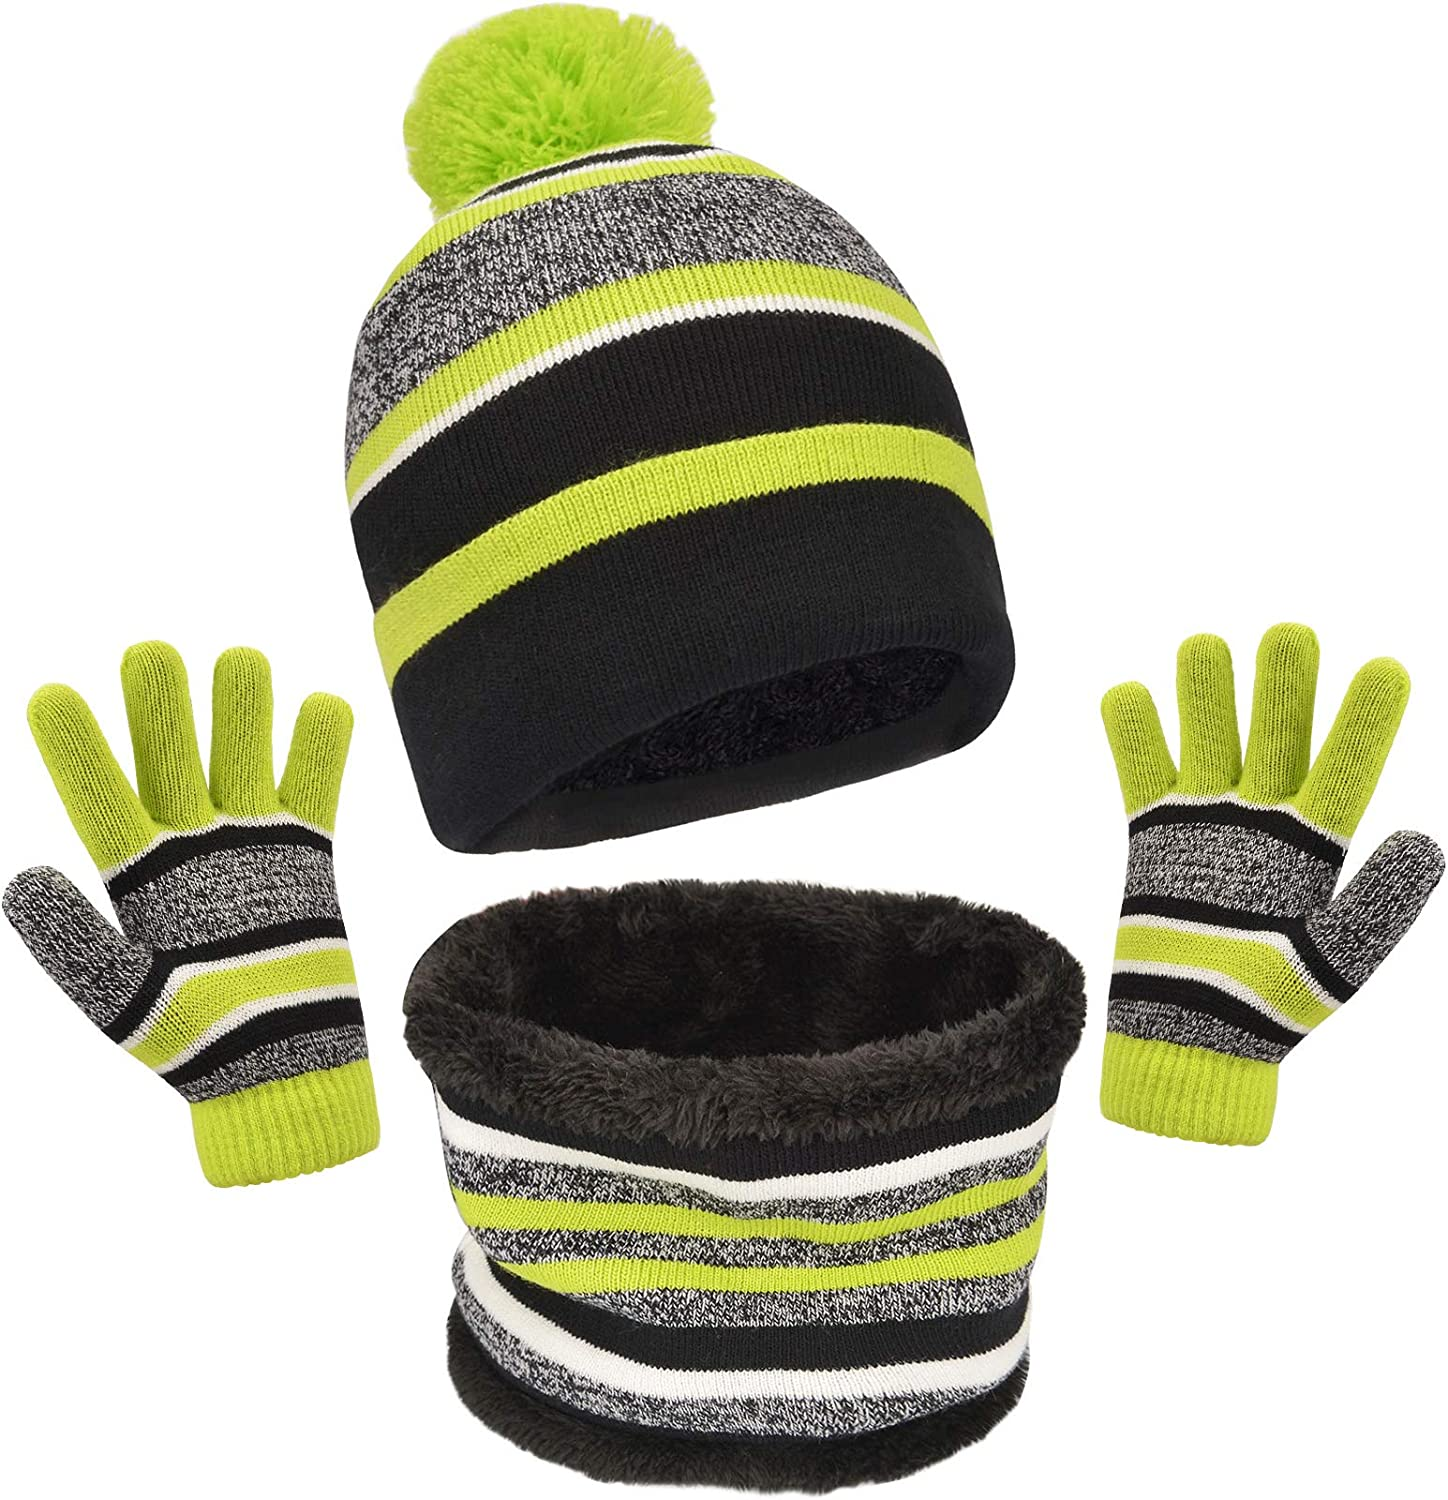 Striped Pom Beanie Glove Neck Warmer Maylisacc Winter Kids Hat Scarf and Gloves 3Pcs Set for Boys and Girls Toddler Age 3-6